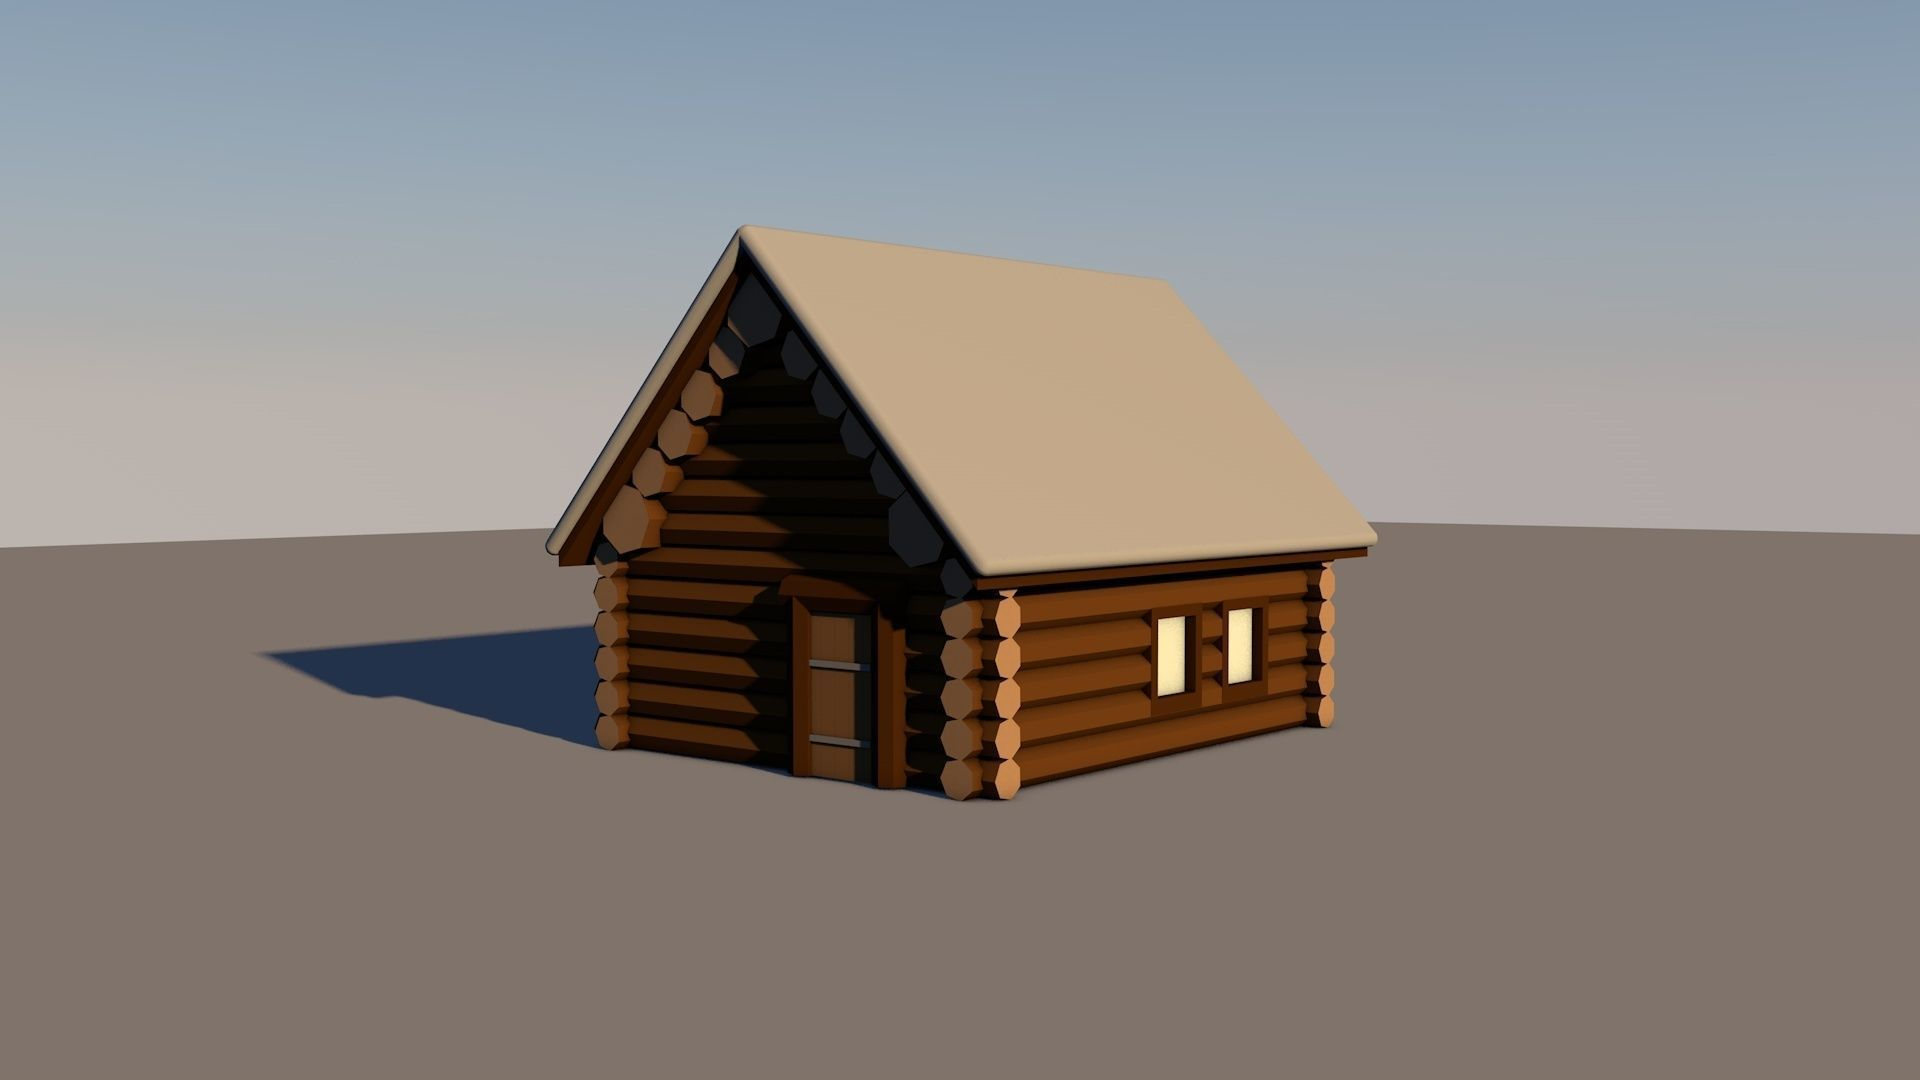 Wood hut in the winter under the snow lowpoly 3D model